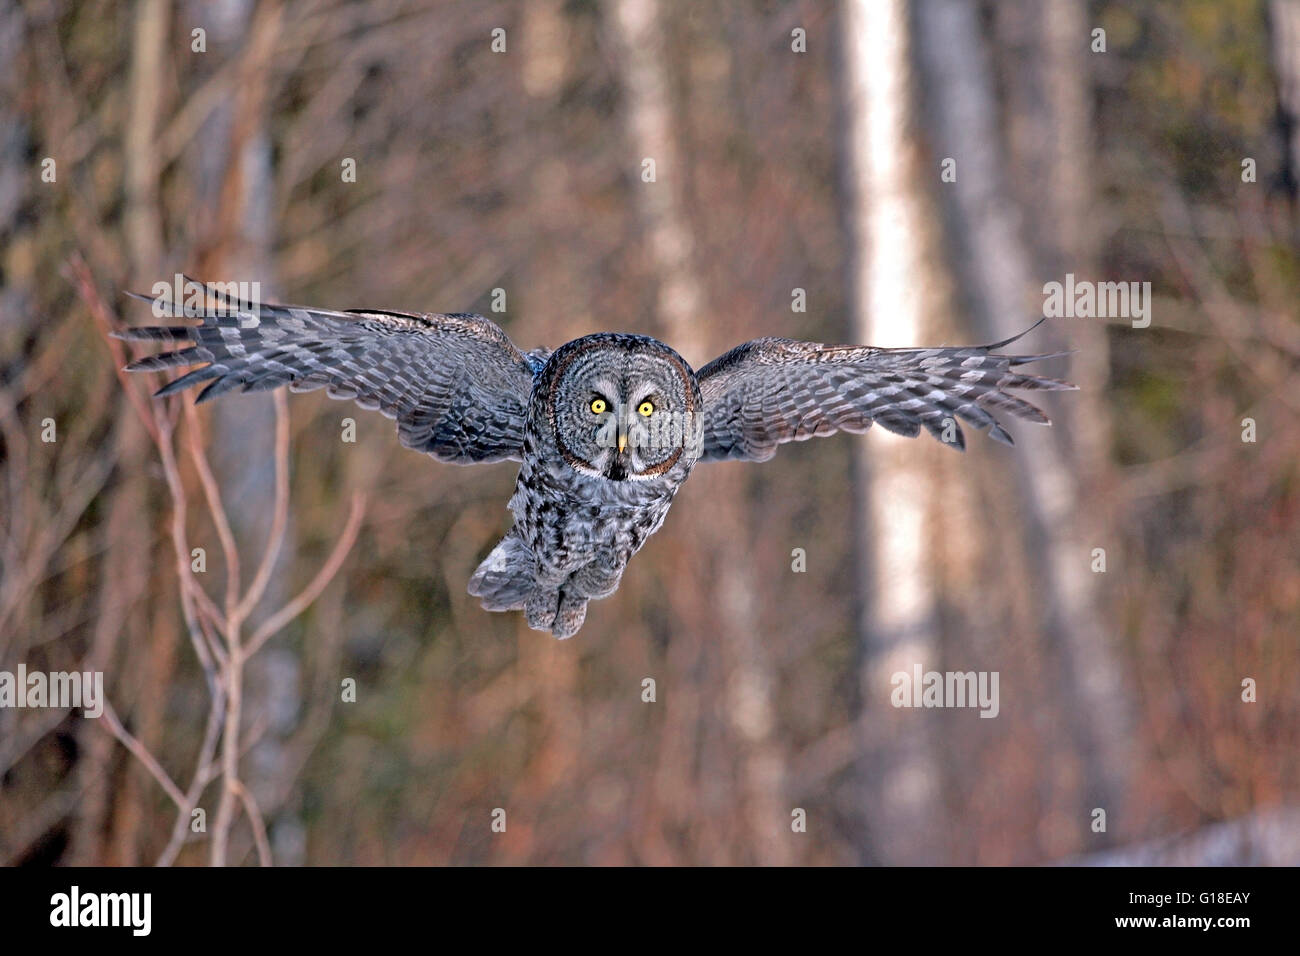 Great Grey Owl in flight, hunting - Stock Image